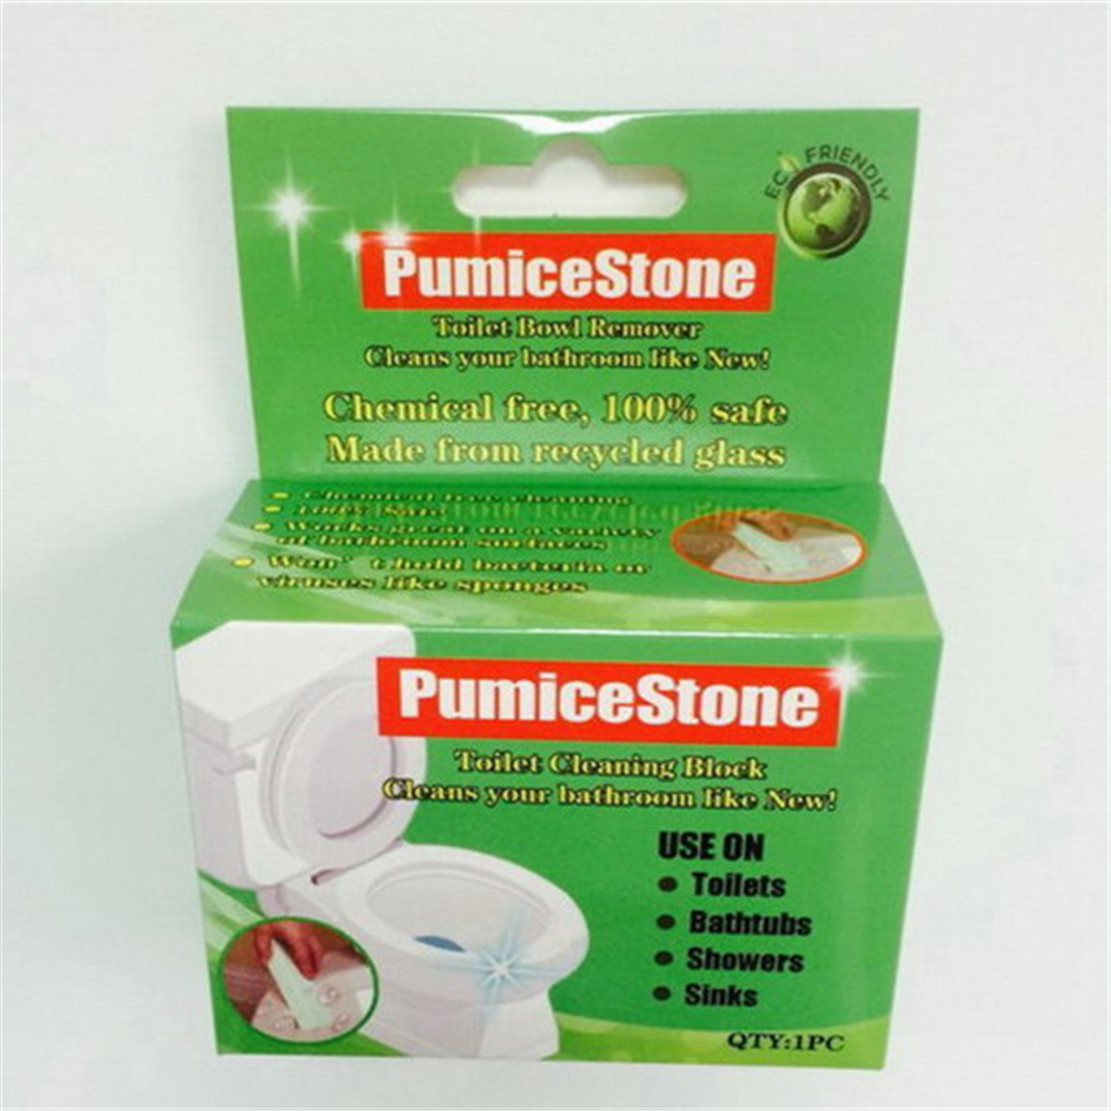 Multi Purpose Pumice Stone Cleaning Stick With Handle For